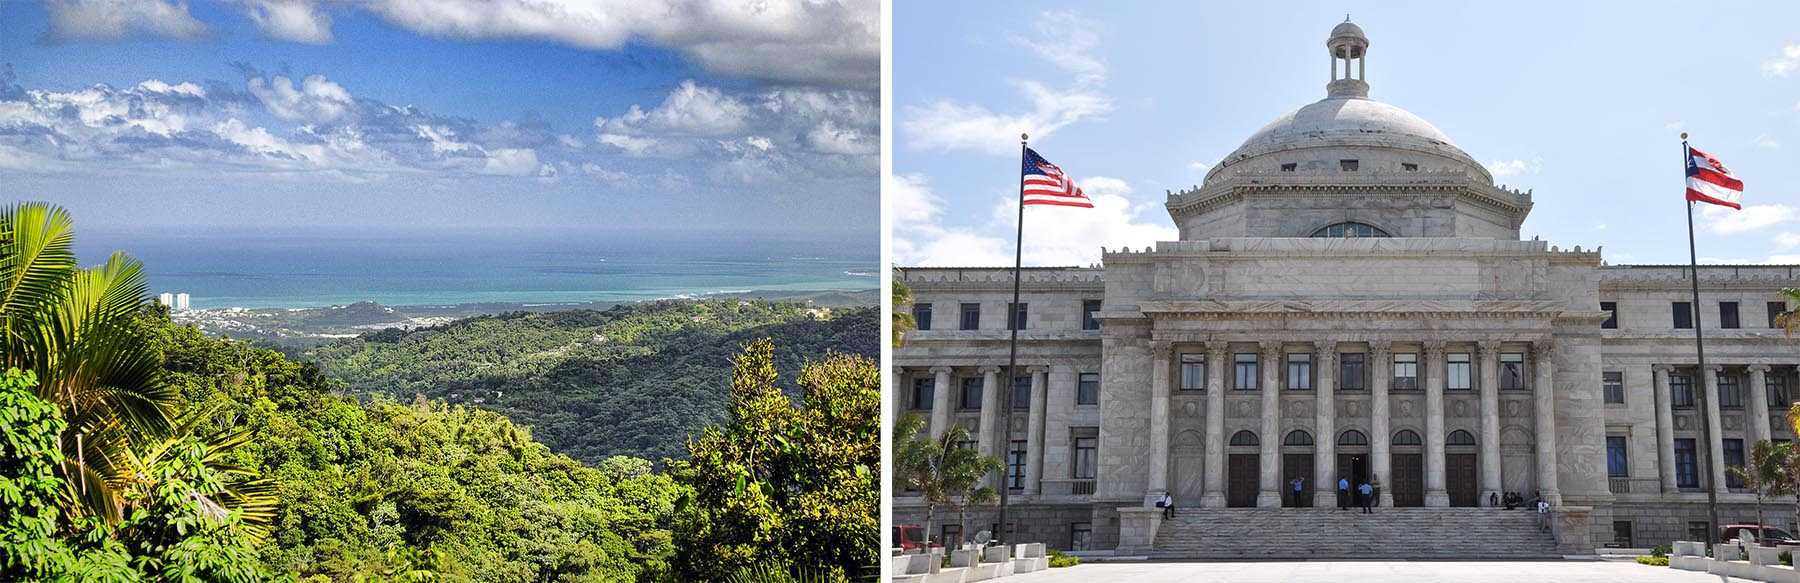 Puerto Rico and its capital building, San Juan. Flicker CC photos by: left, Trish Hartmann, right, Nate Hughes.